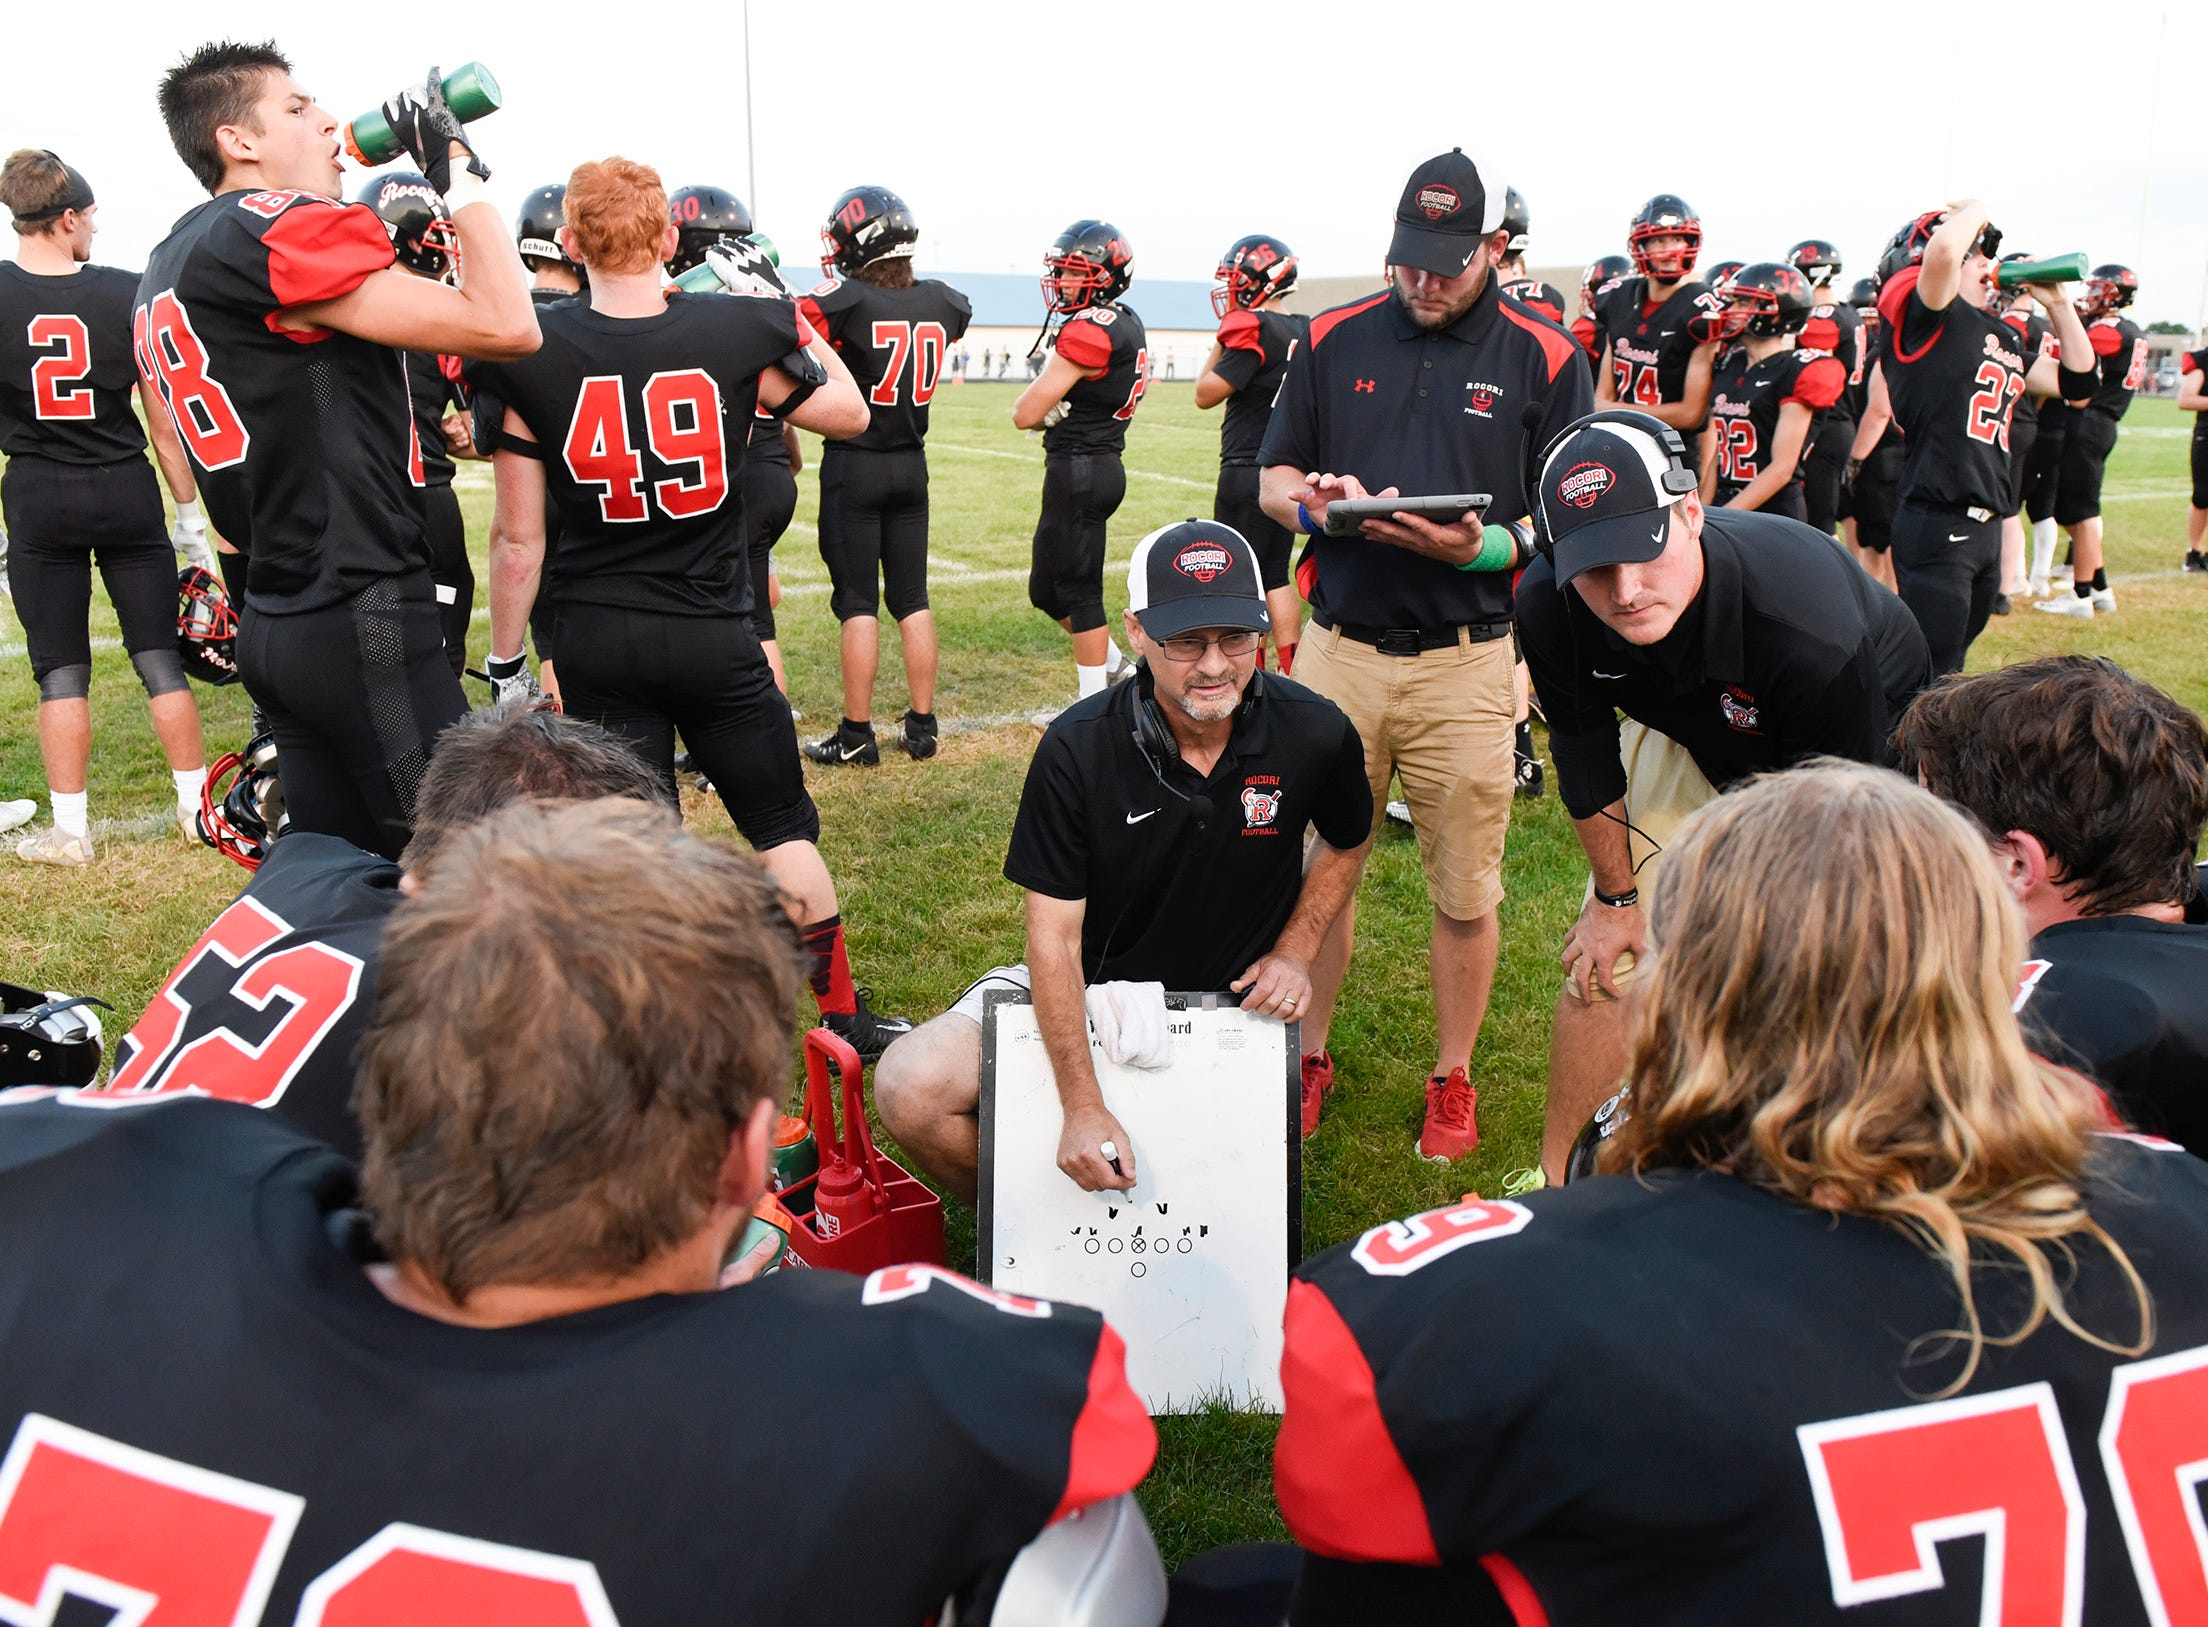 ROCORI players and coaches talk on the sidelines.